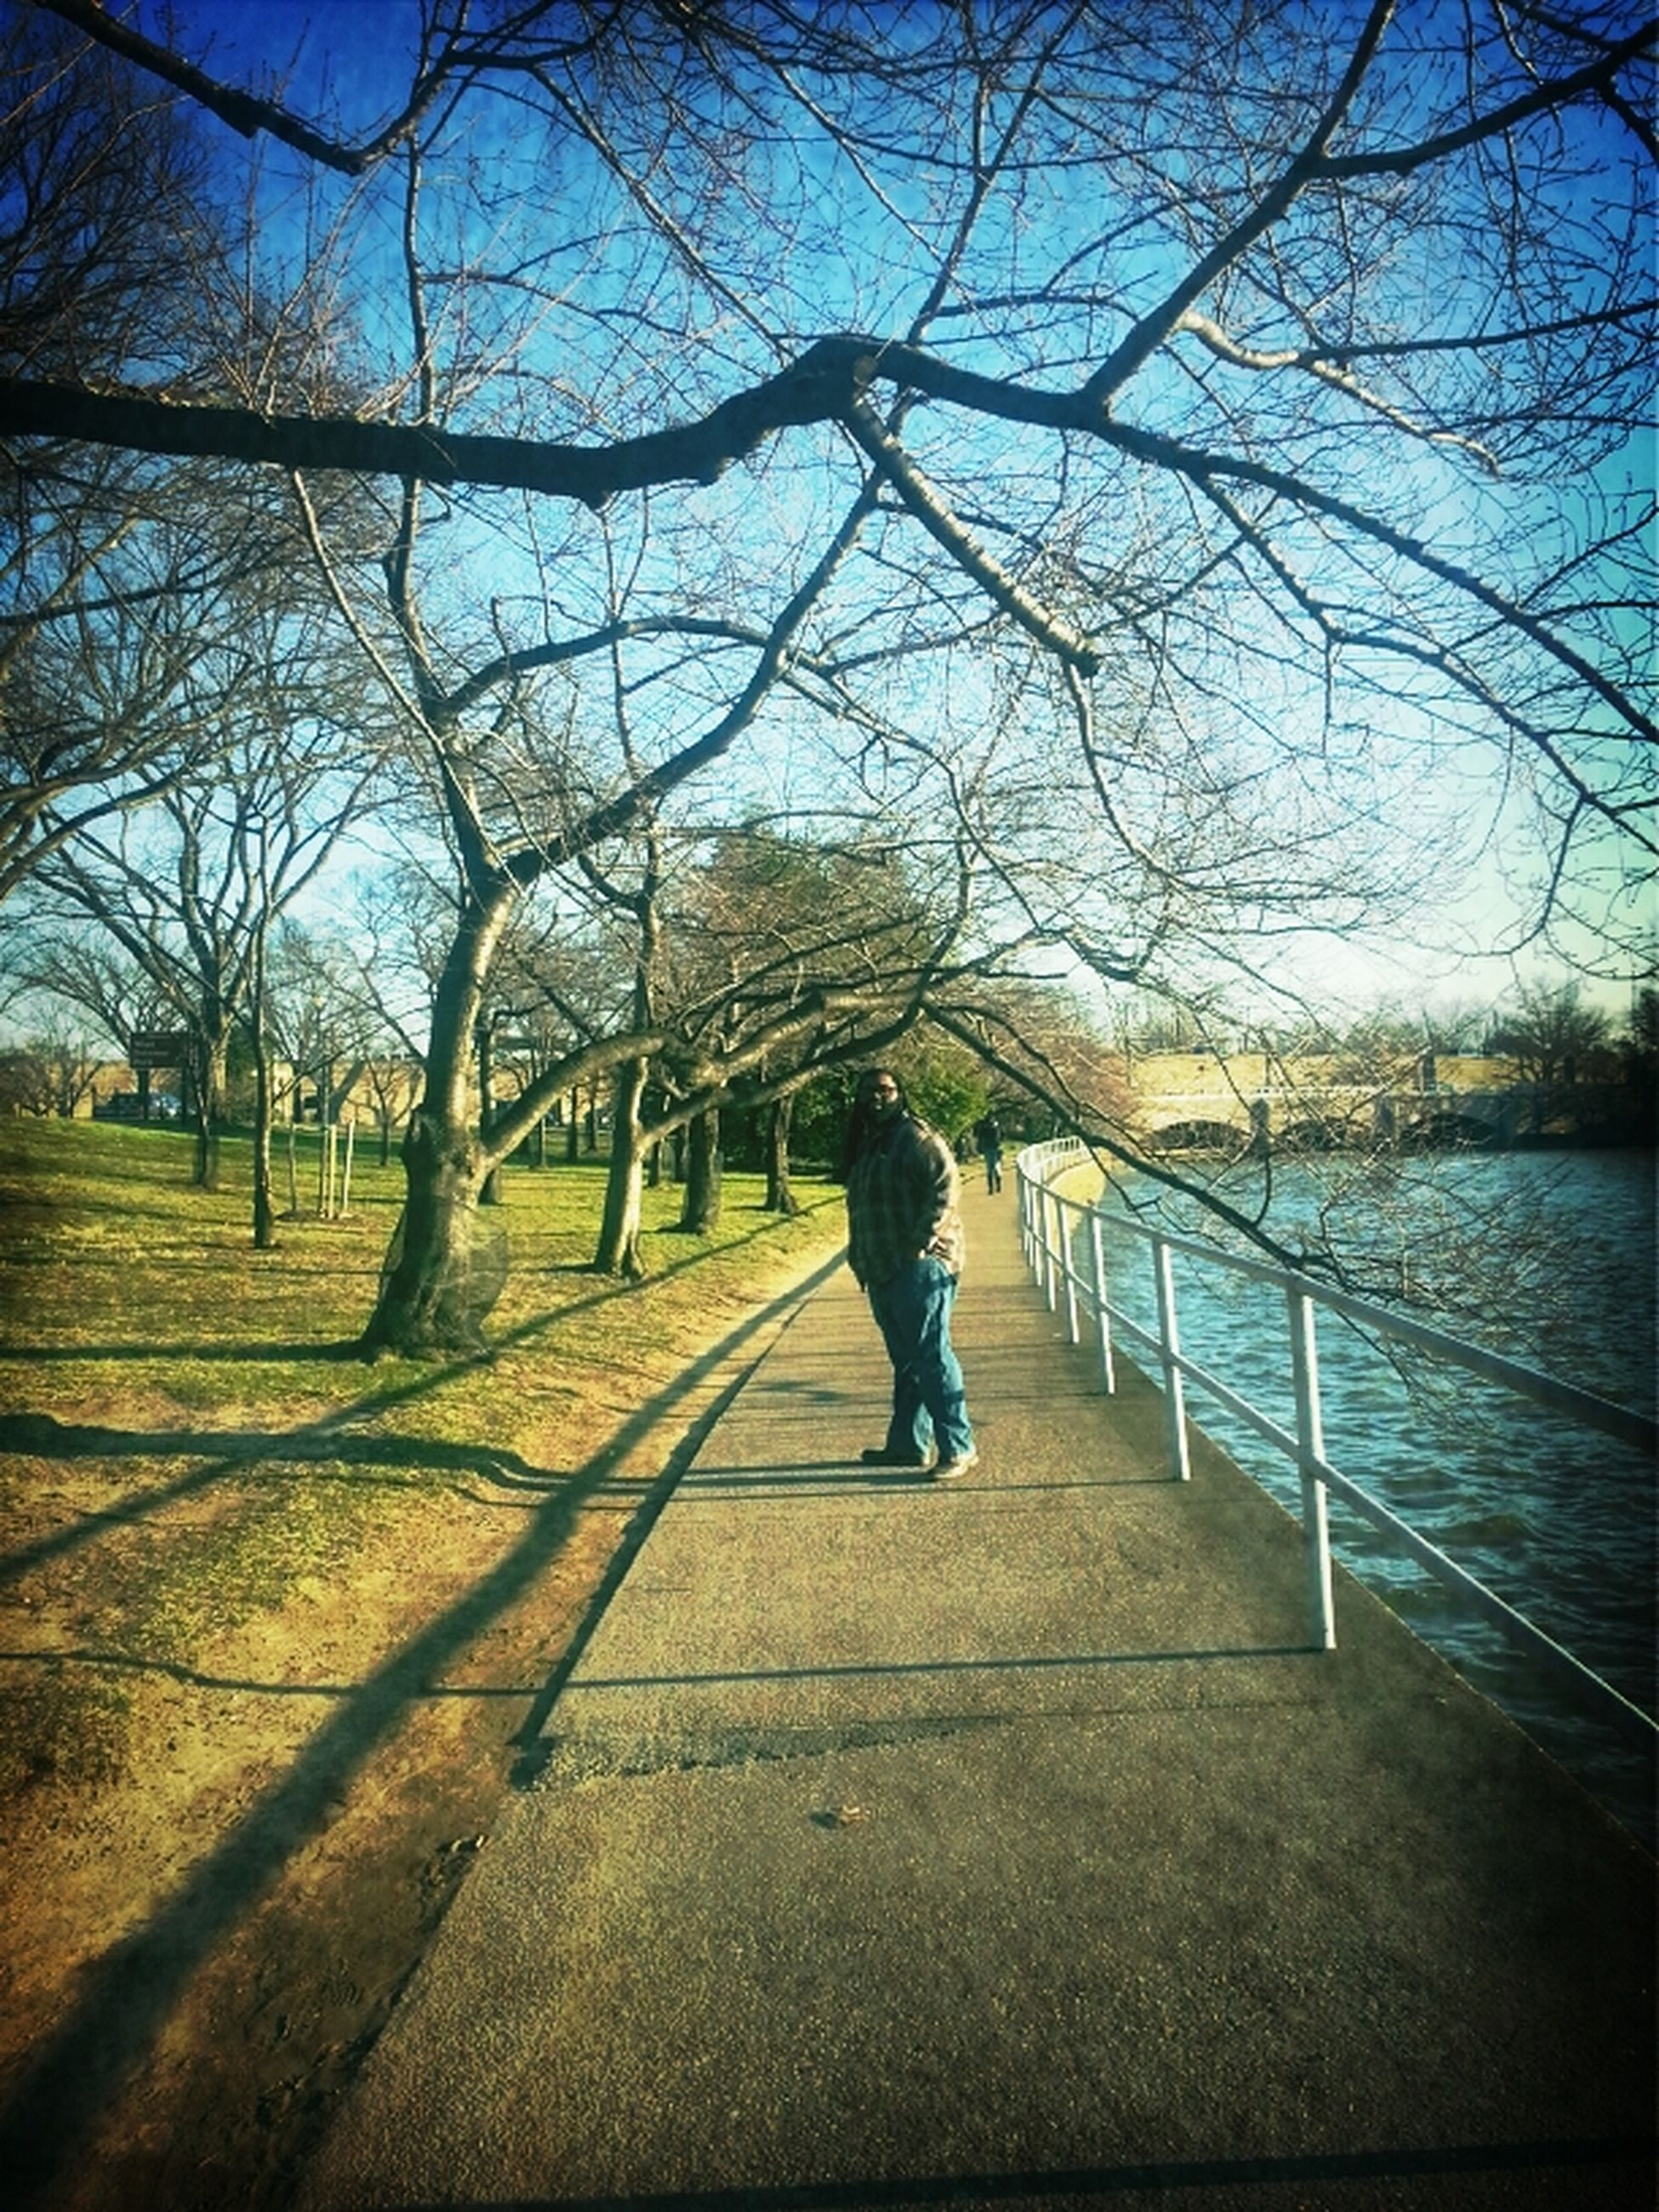 tree, full length, rear view, lifestyles, leisure activity, water, walking, the way forward, bare tree, lake, sky, person, day, nature, railing, standing, footpath, tranquility